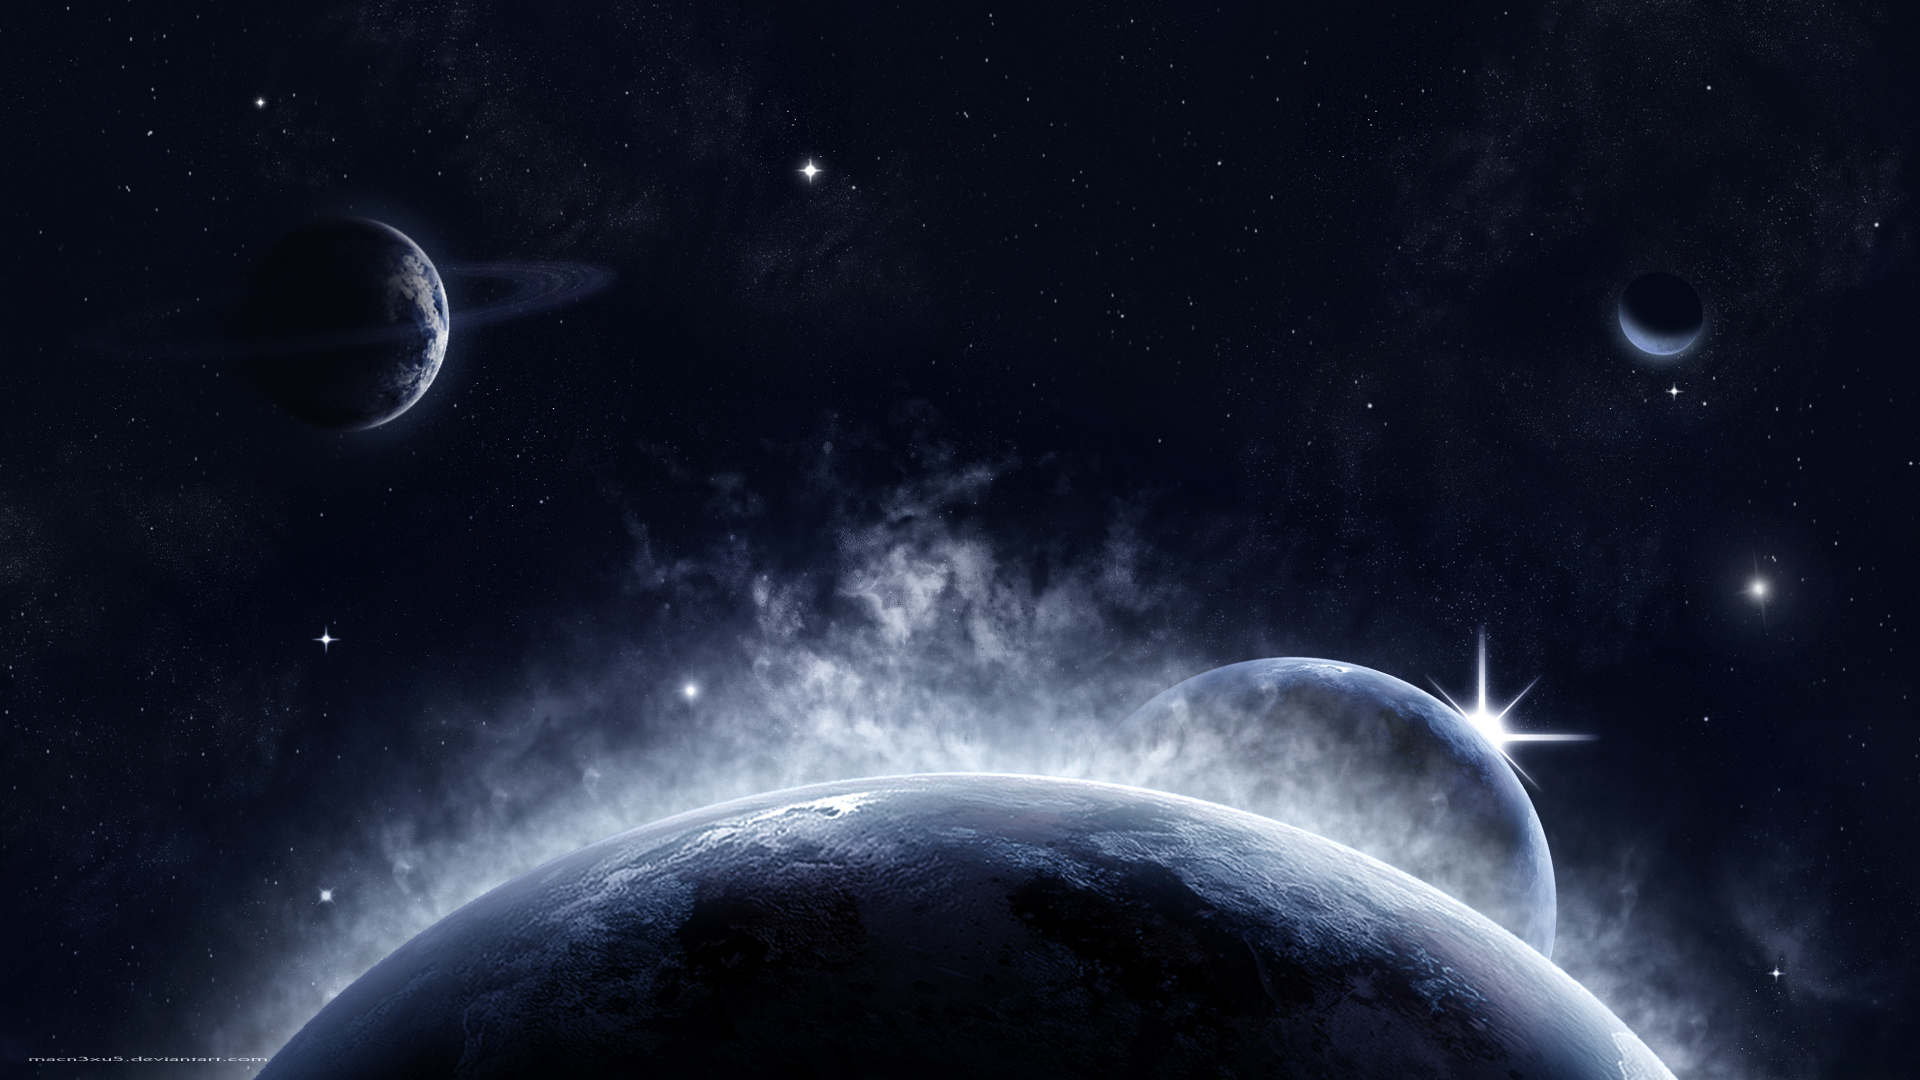 celestial computer wallpapers desktop backgrounds